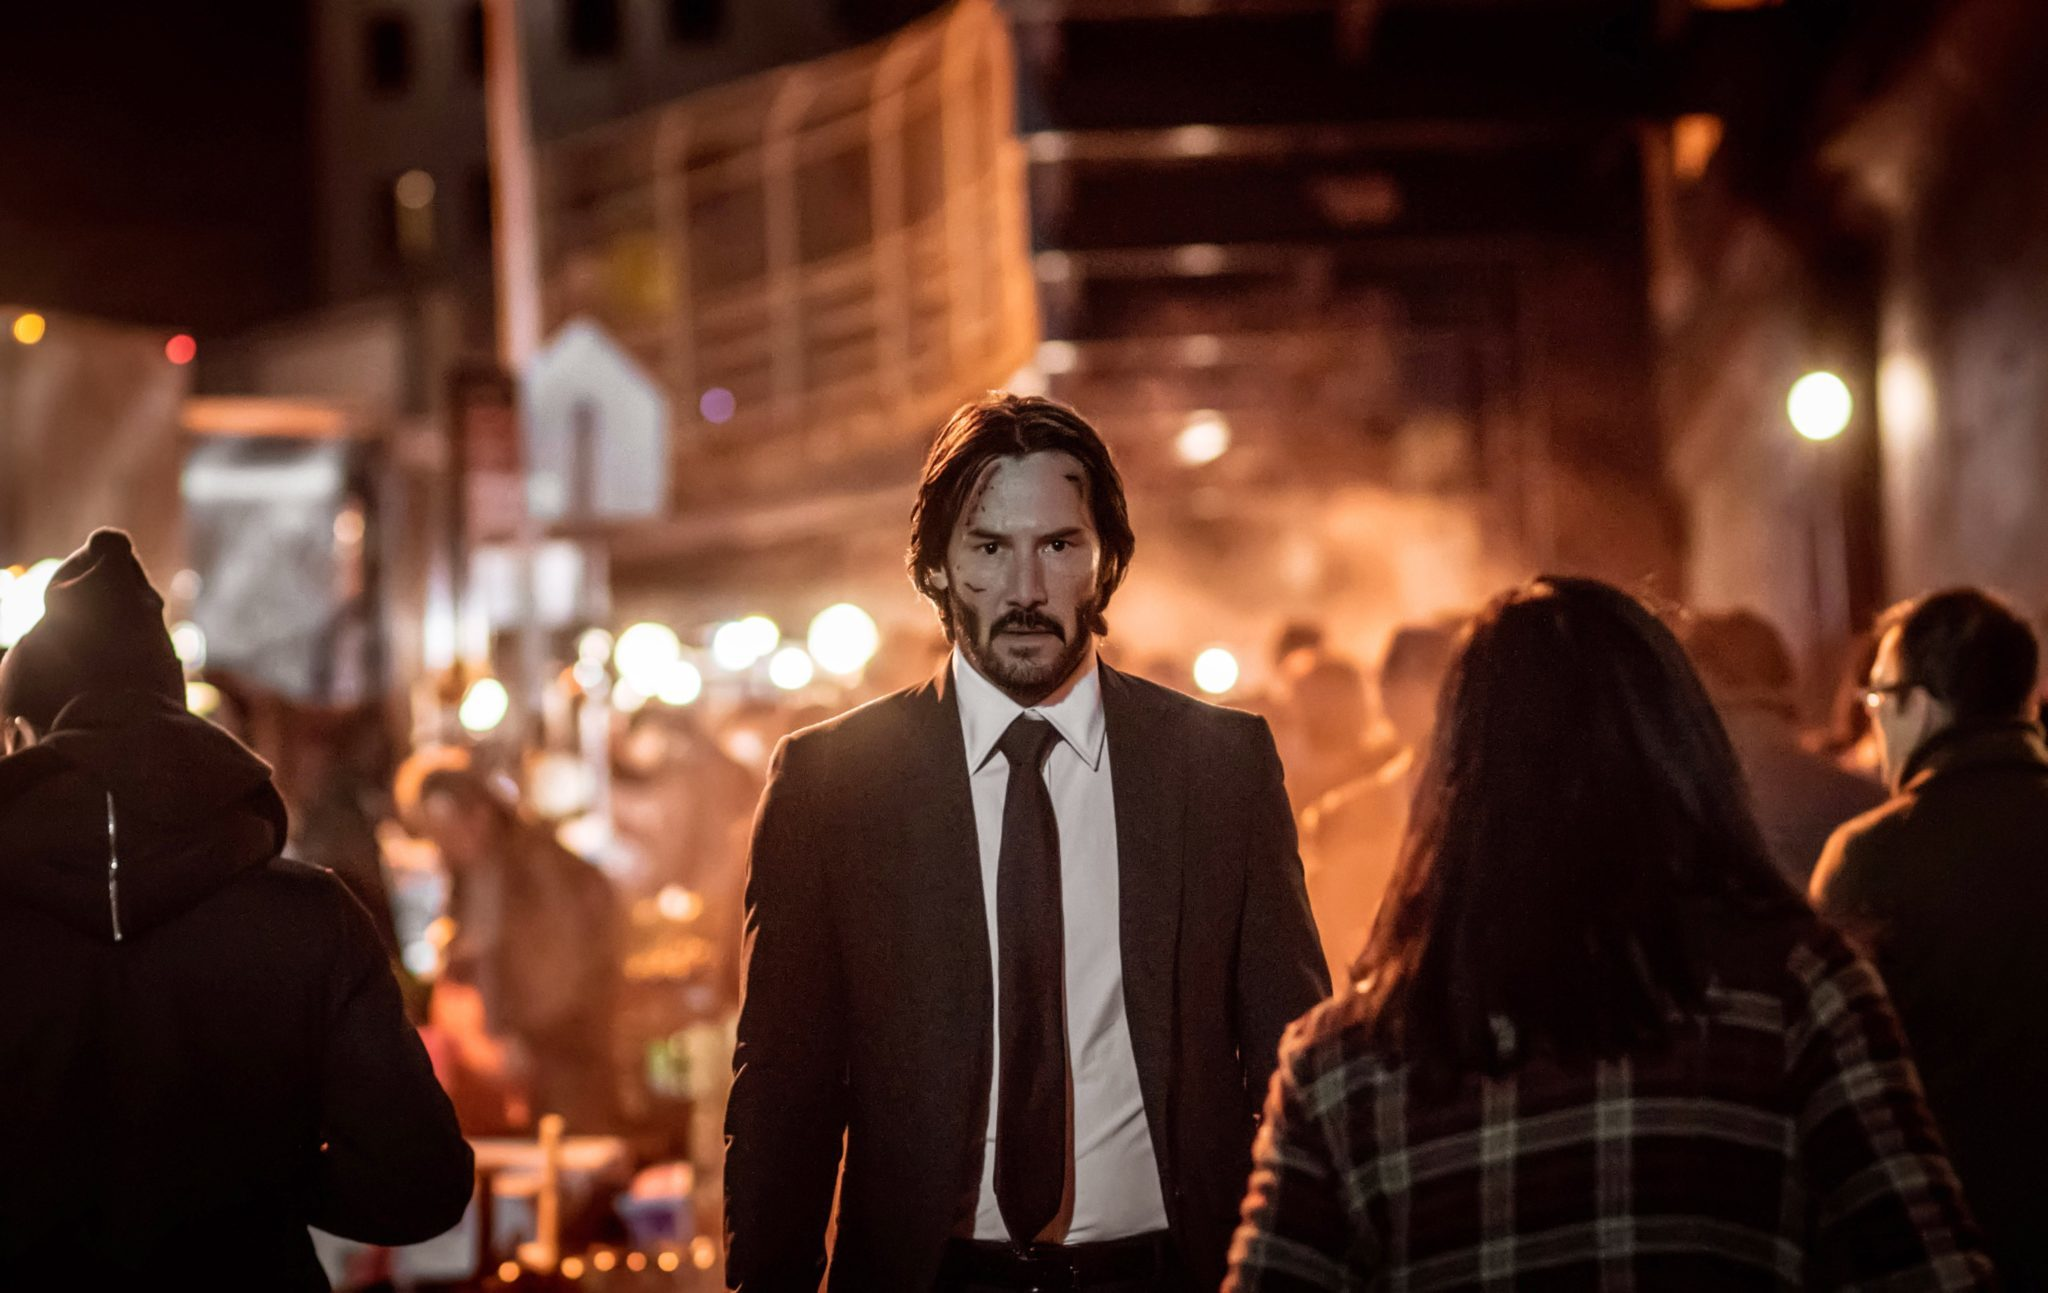 Keanu is everyone keanu reeves pictures - Keanu Reeves S Memeable John Wick 2 Will Solidify His Legacy Inverse